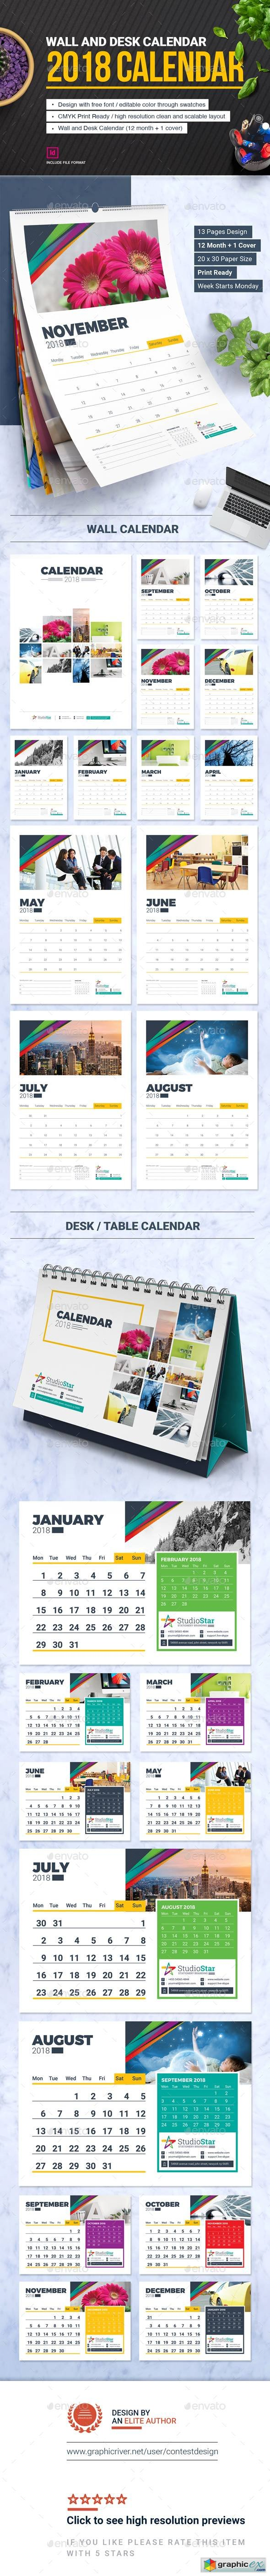 2018 Calendar Design Template | Wall and Desk / Table Calendar 2018